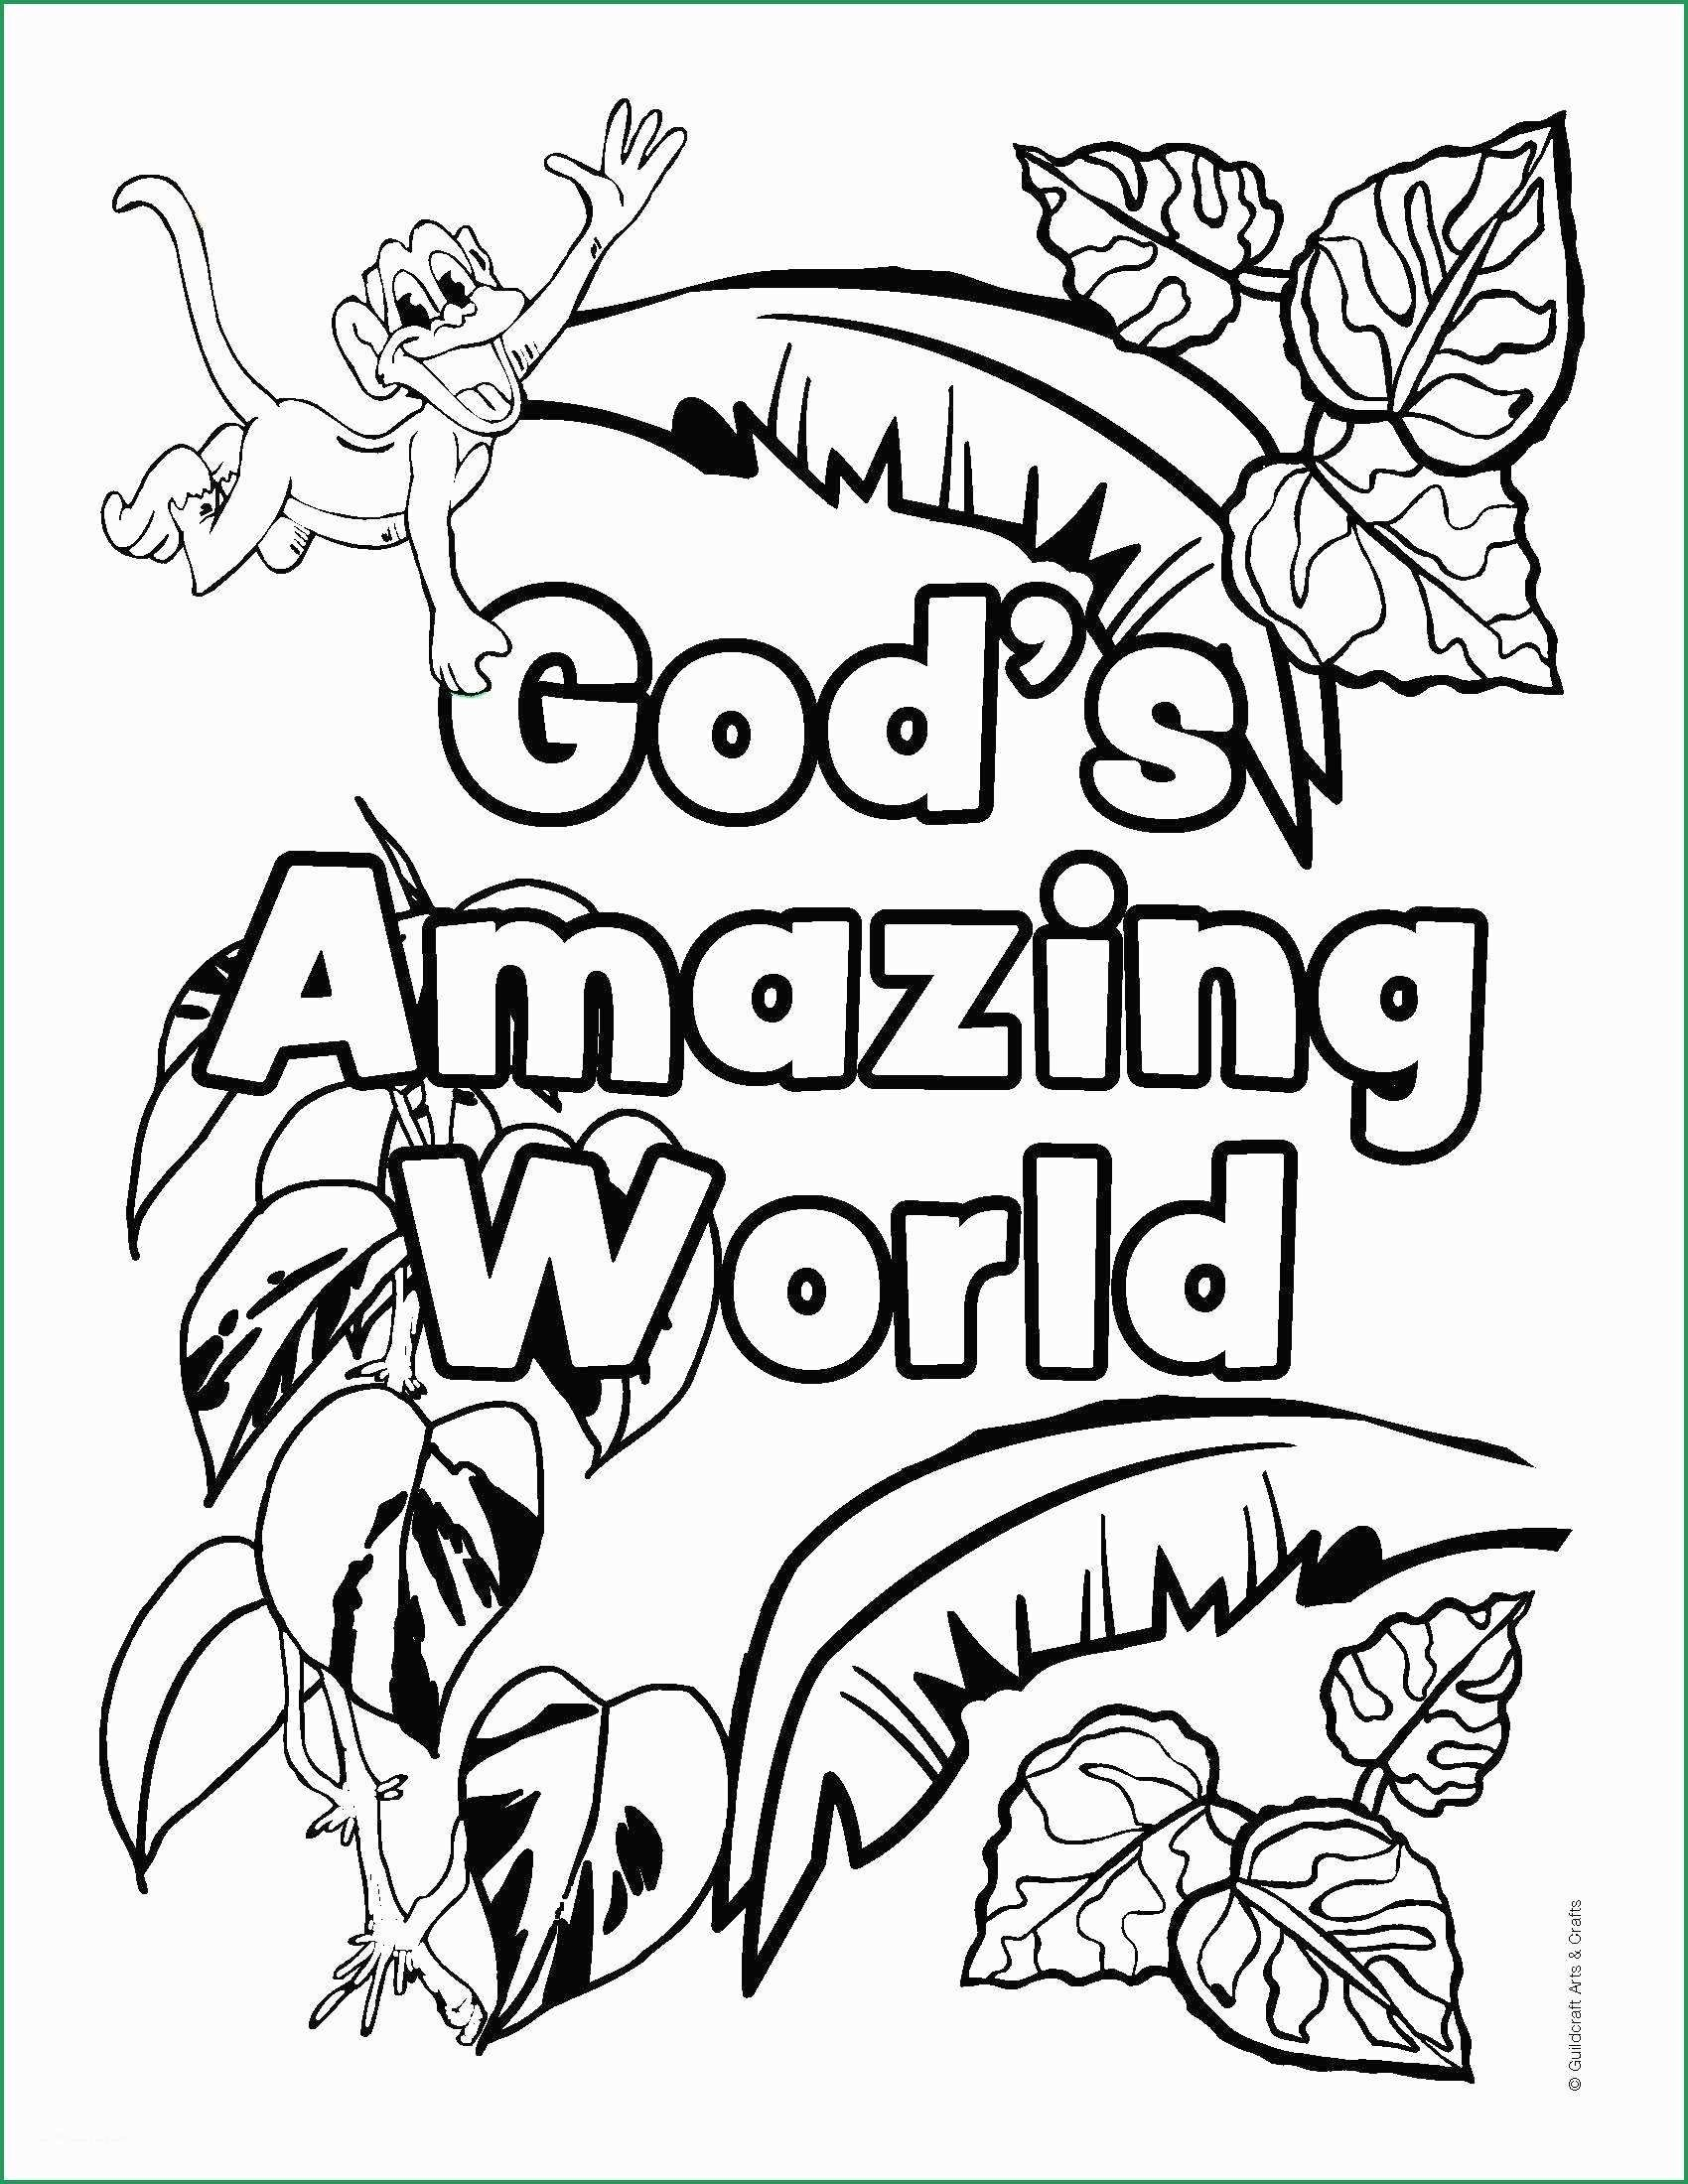 Jungle Animal Coloring Pages Jungle Printable Coloring Pages New Realistic Jungle Animal Coloring Entitlementtrap Com Jungle Coloring Pages Animal Coloring Pages Coloring Pages Inspirational